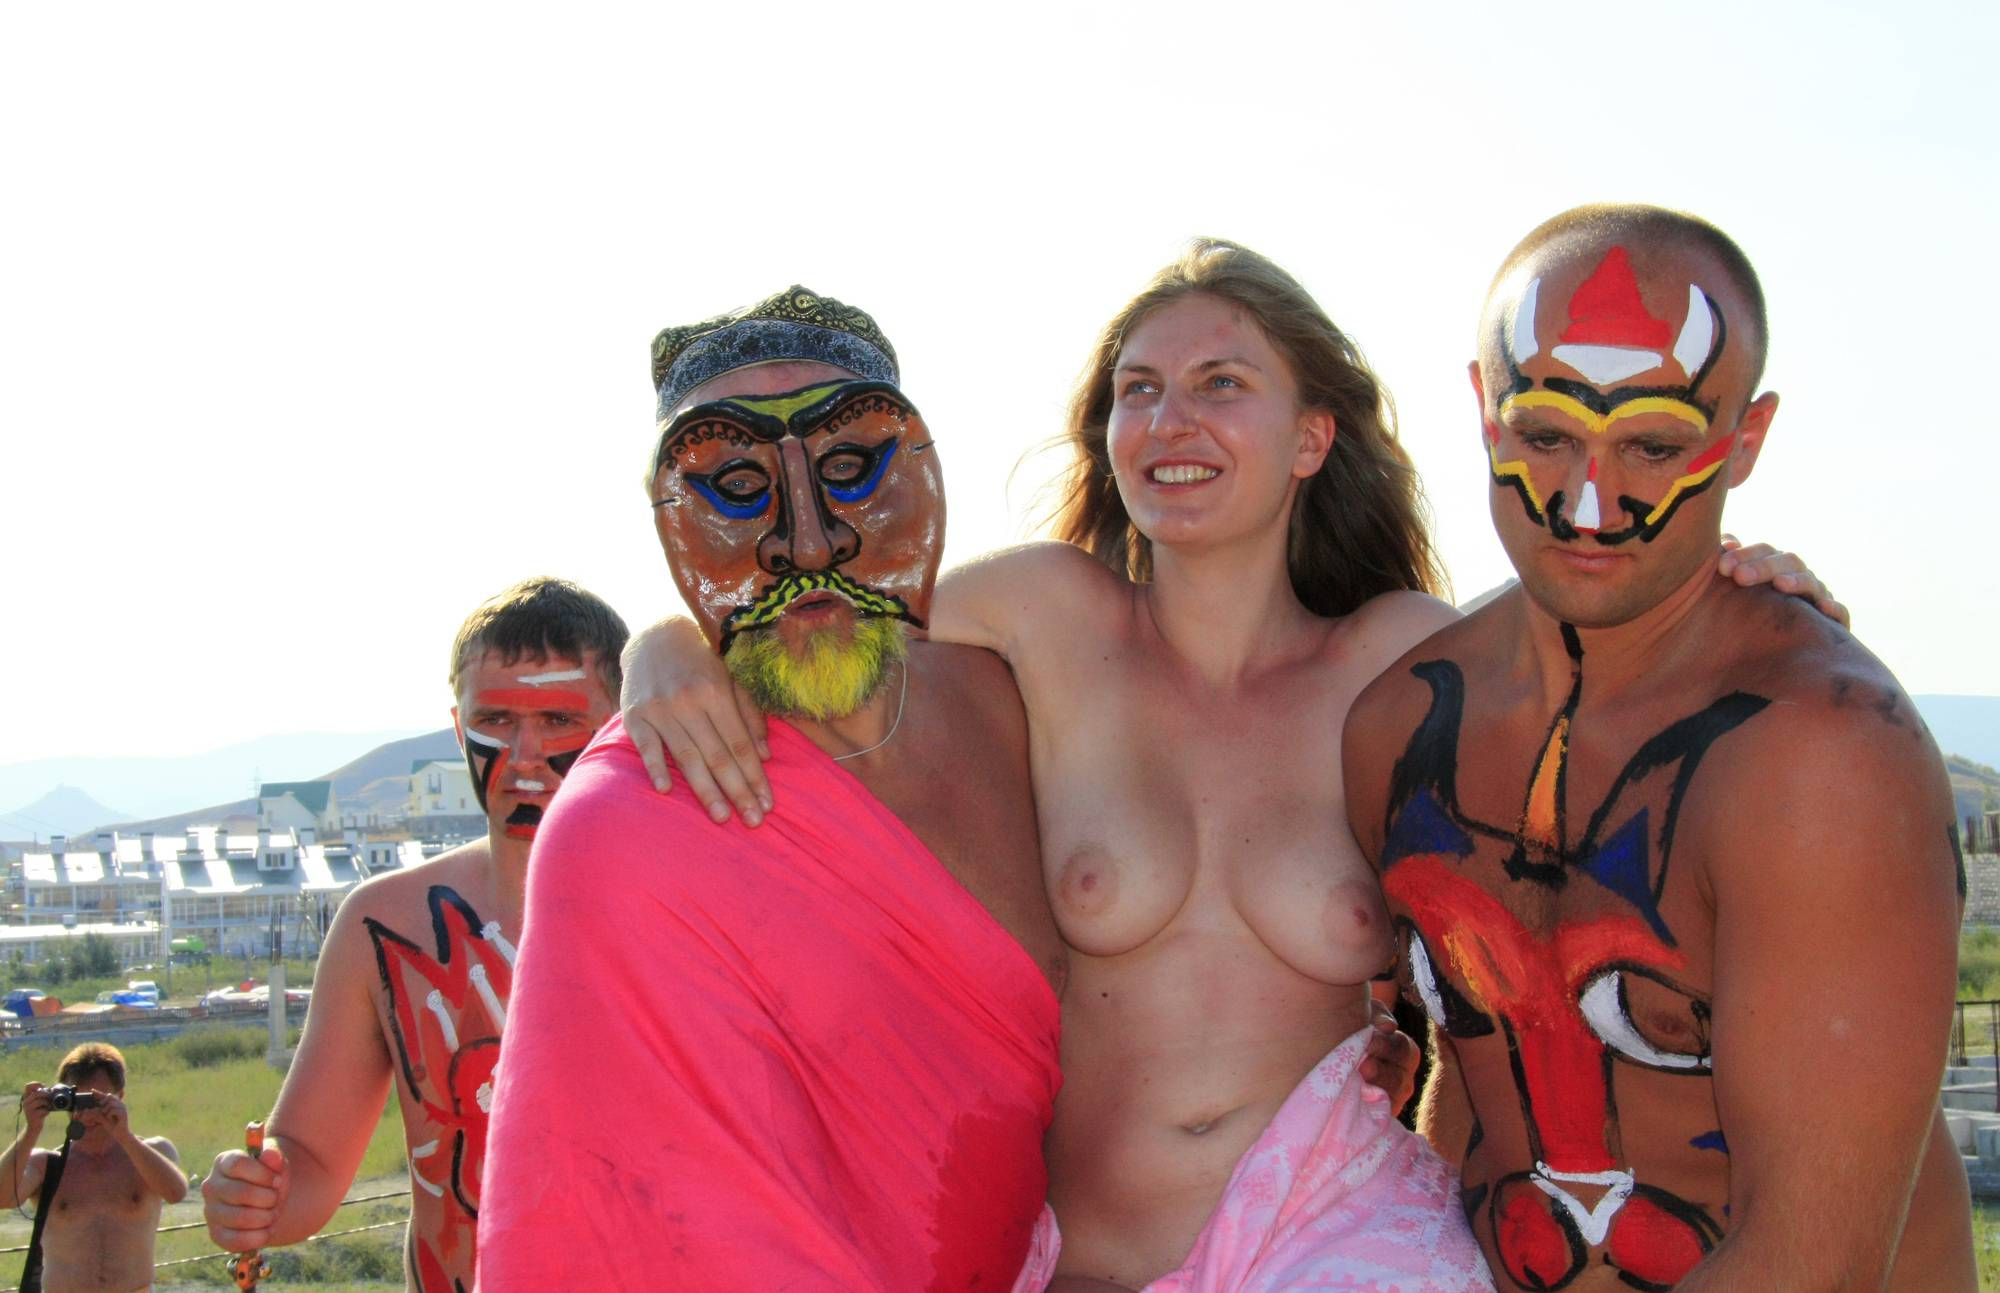 Nudist Pics Our Way To The Mountain - 2